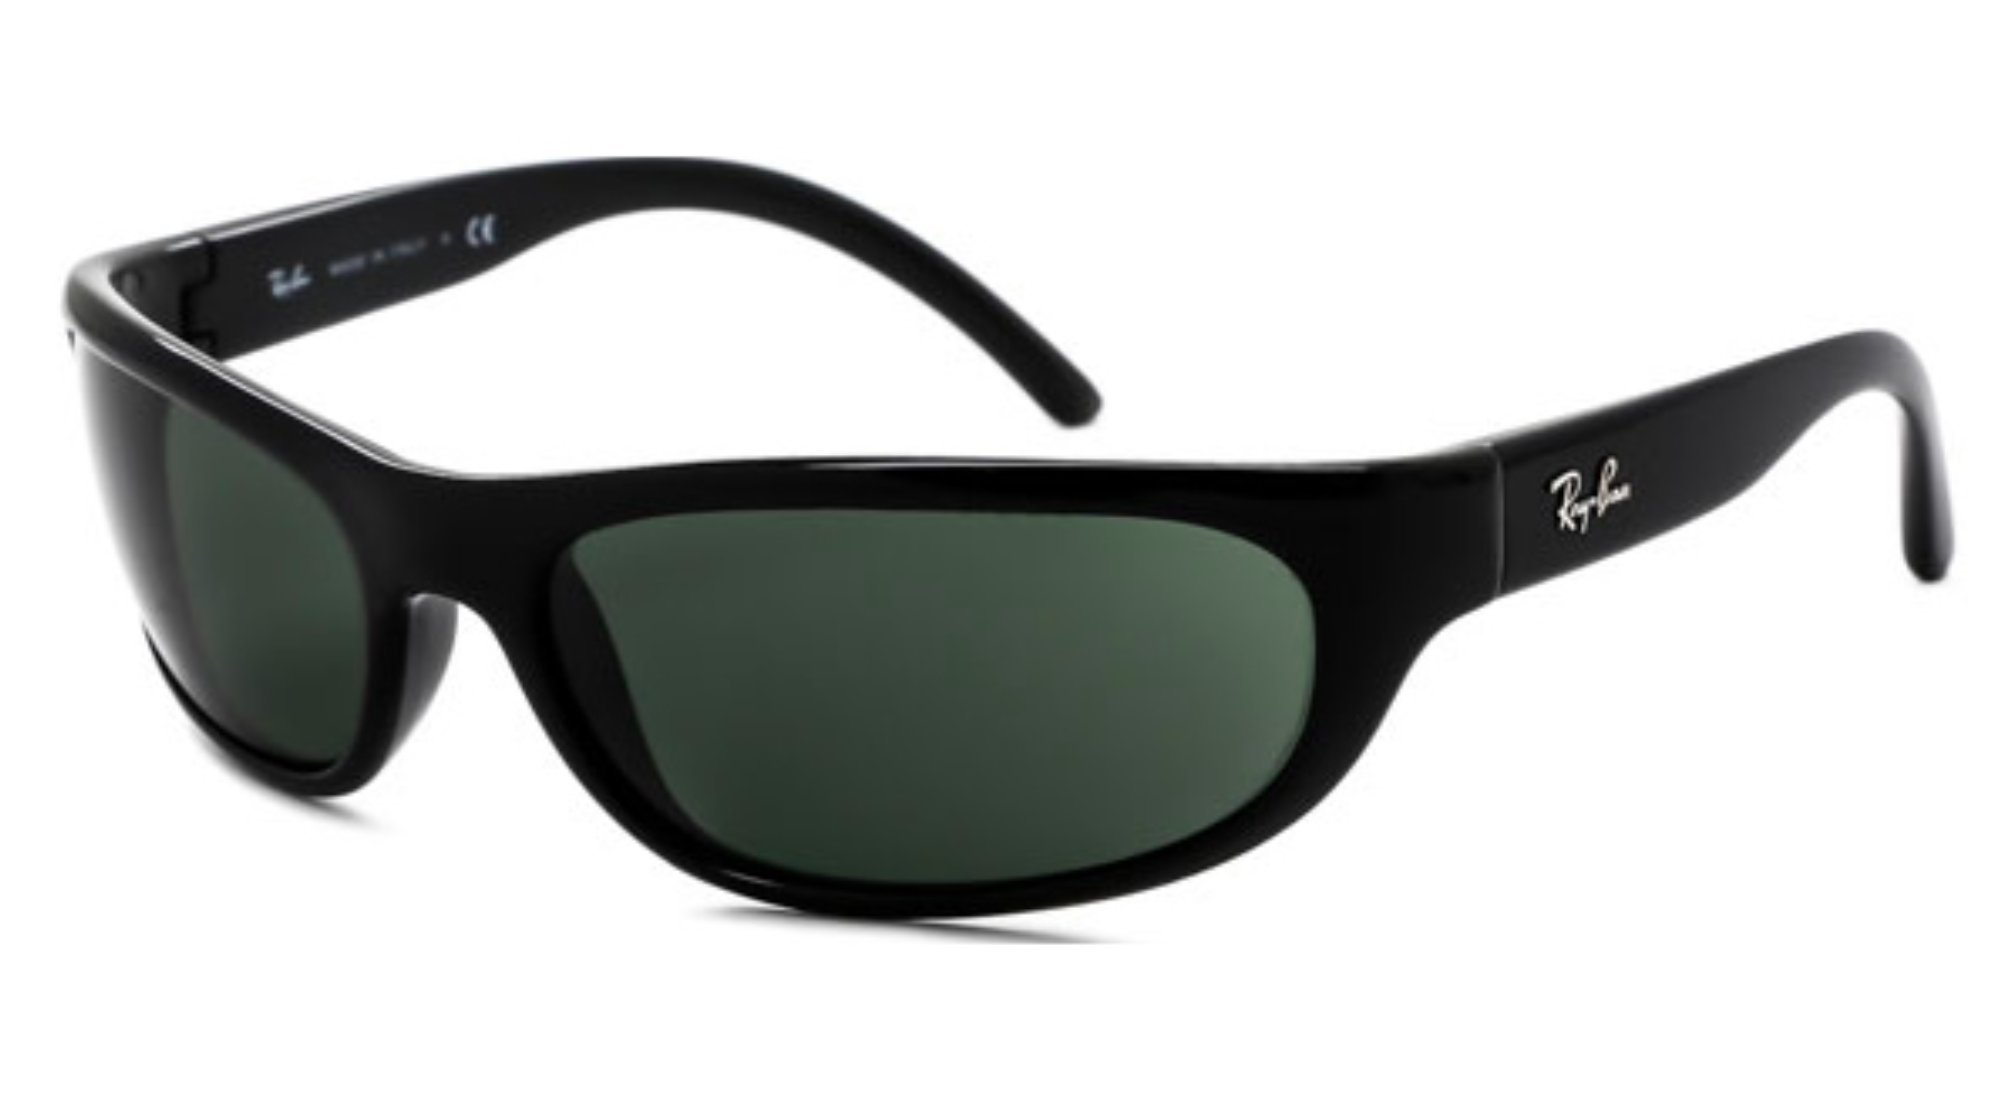 RAY-BAN  RB4033 - 601S48 Predator Polarized Sunglasses 60mm